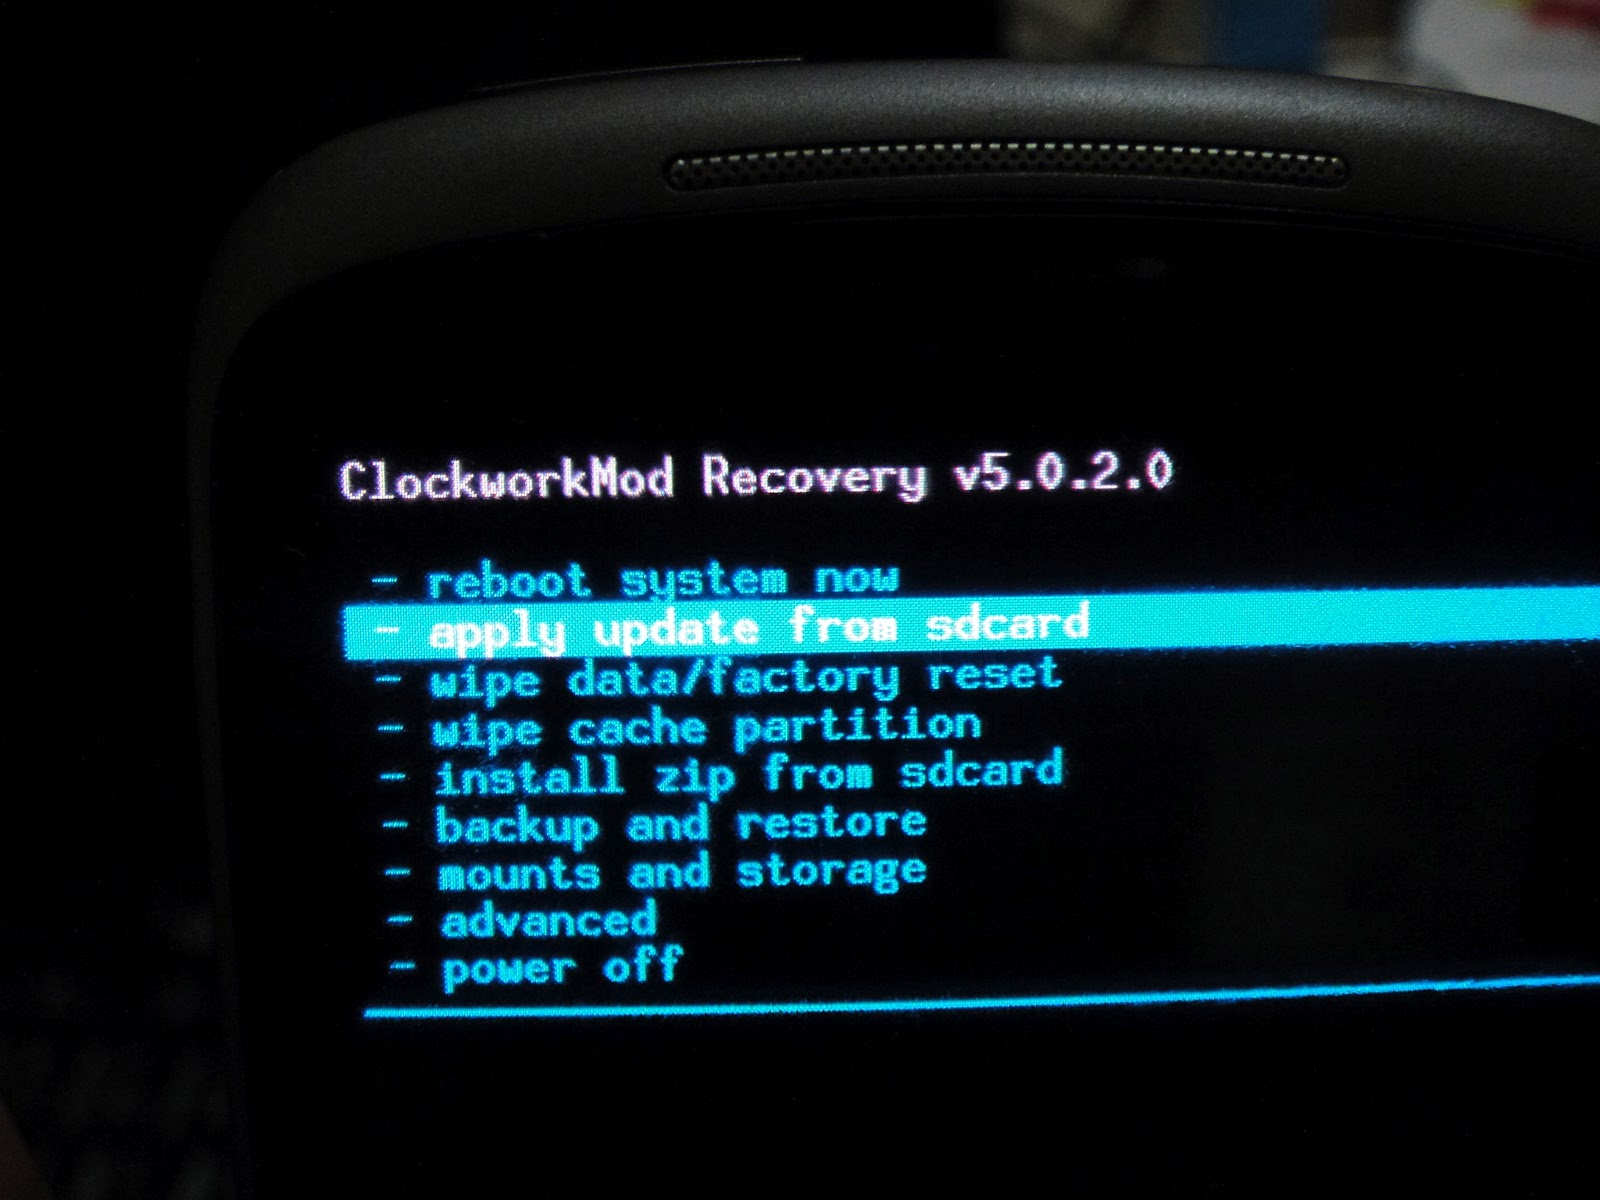 recovery-clockwork-5.0.2.0-passion.img